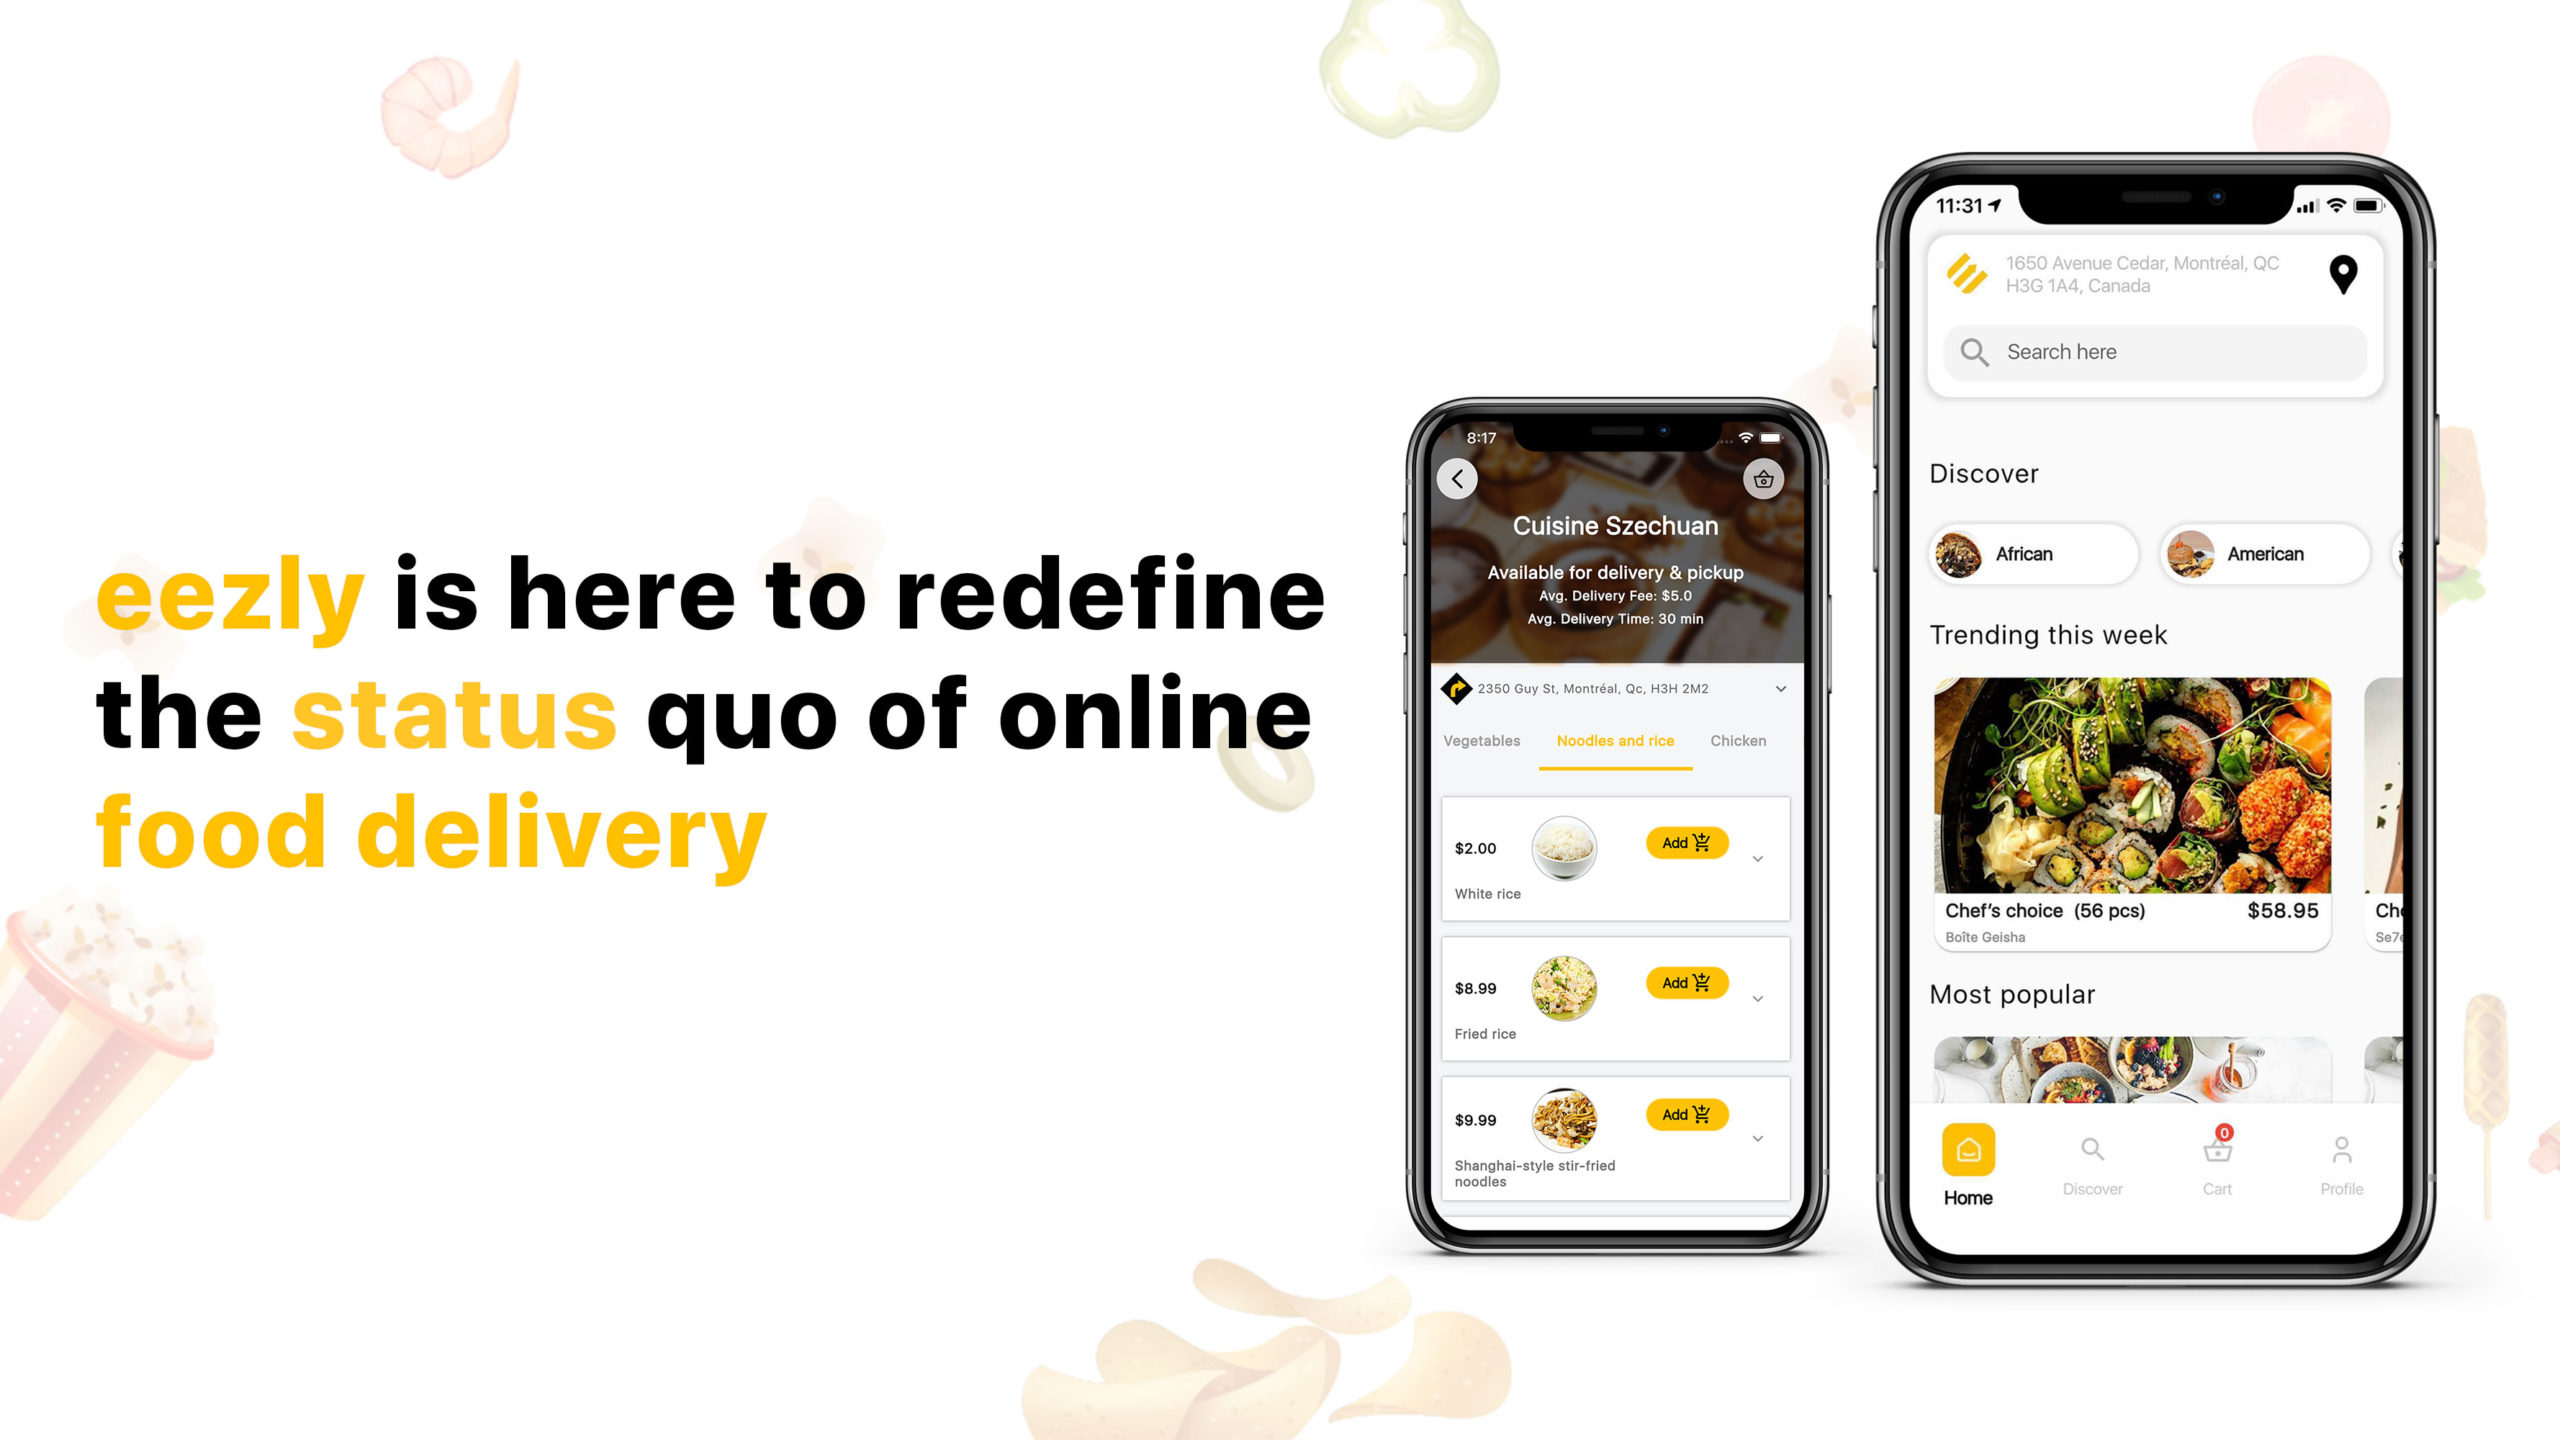 You are currently viewing eezly is here to redefine the status quo of online food delivery